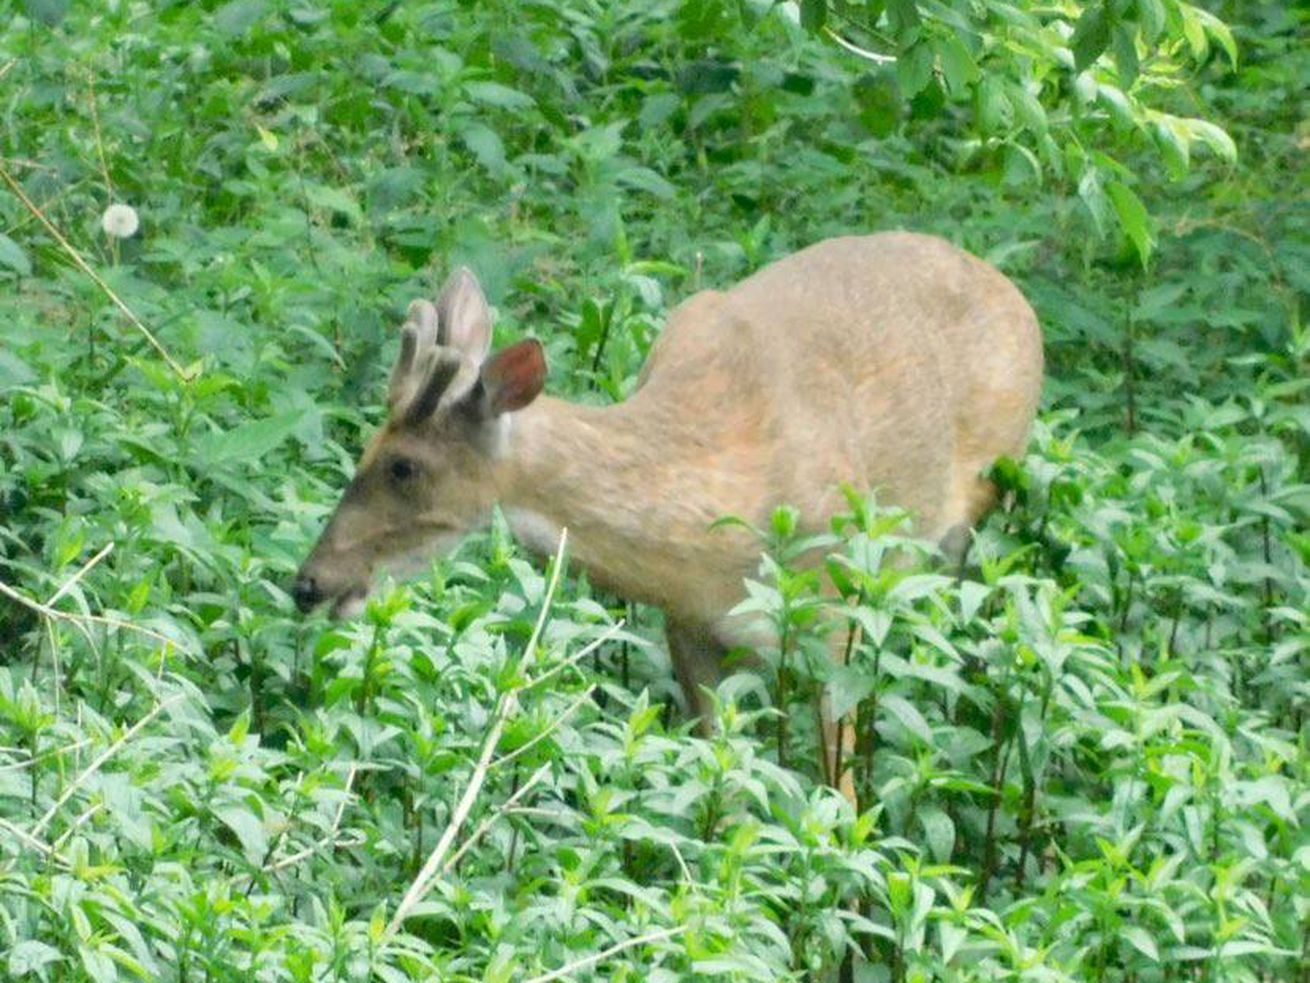 A buck in velvet in May near the Des Plaines Riverwalk. Credit: Alan Anderson